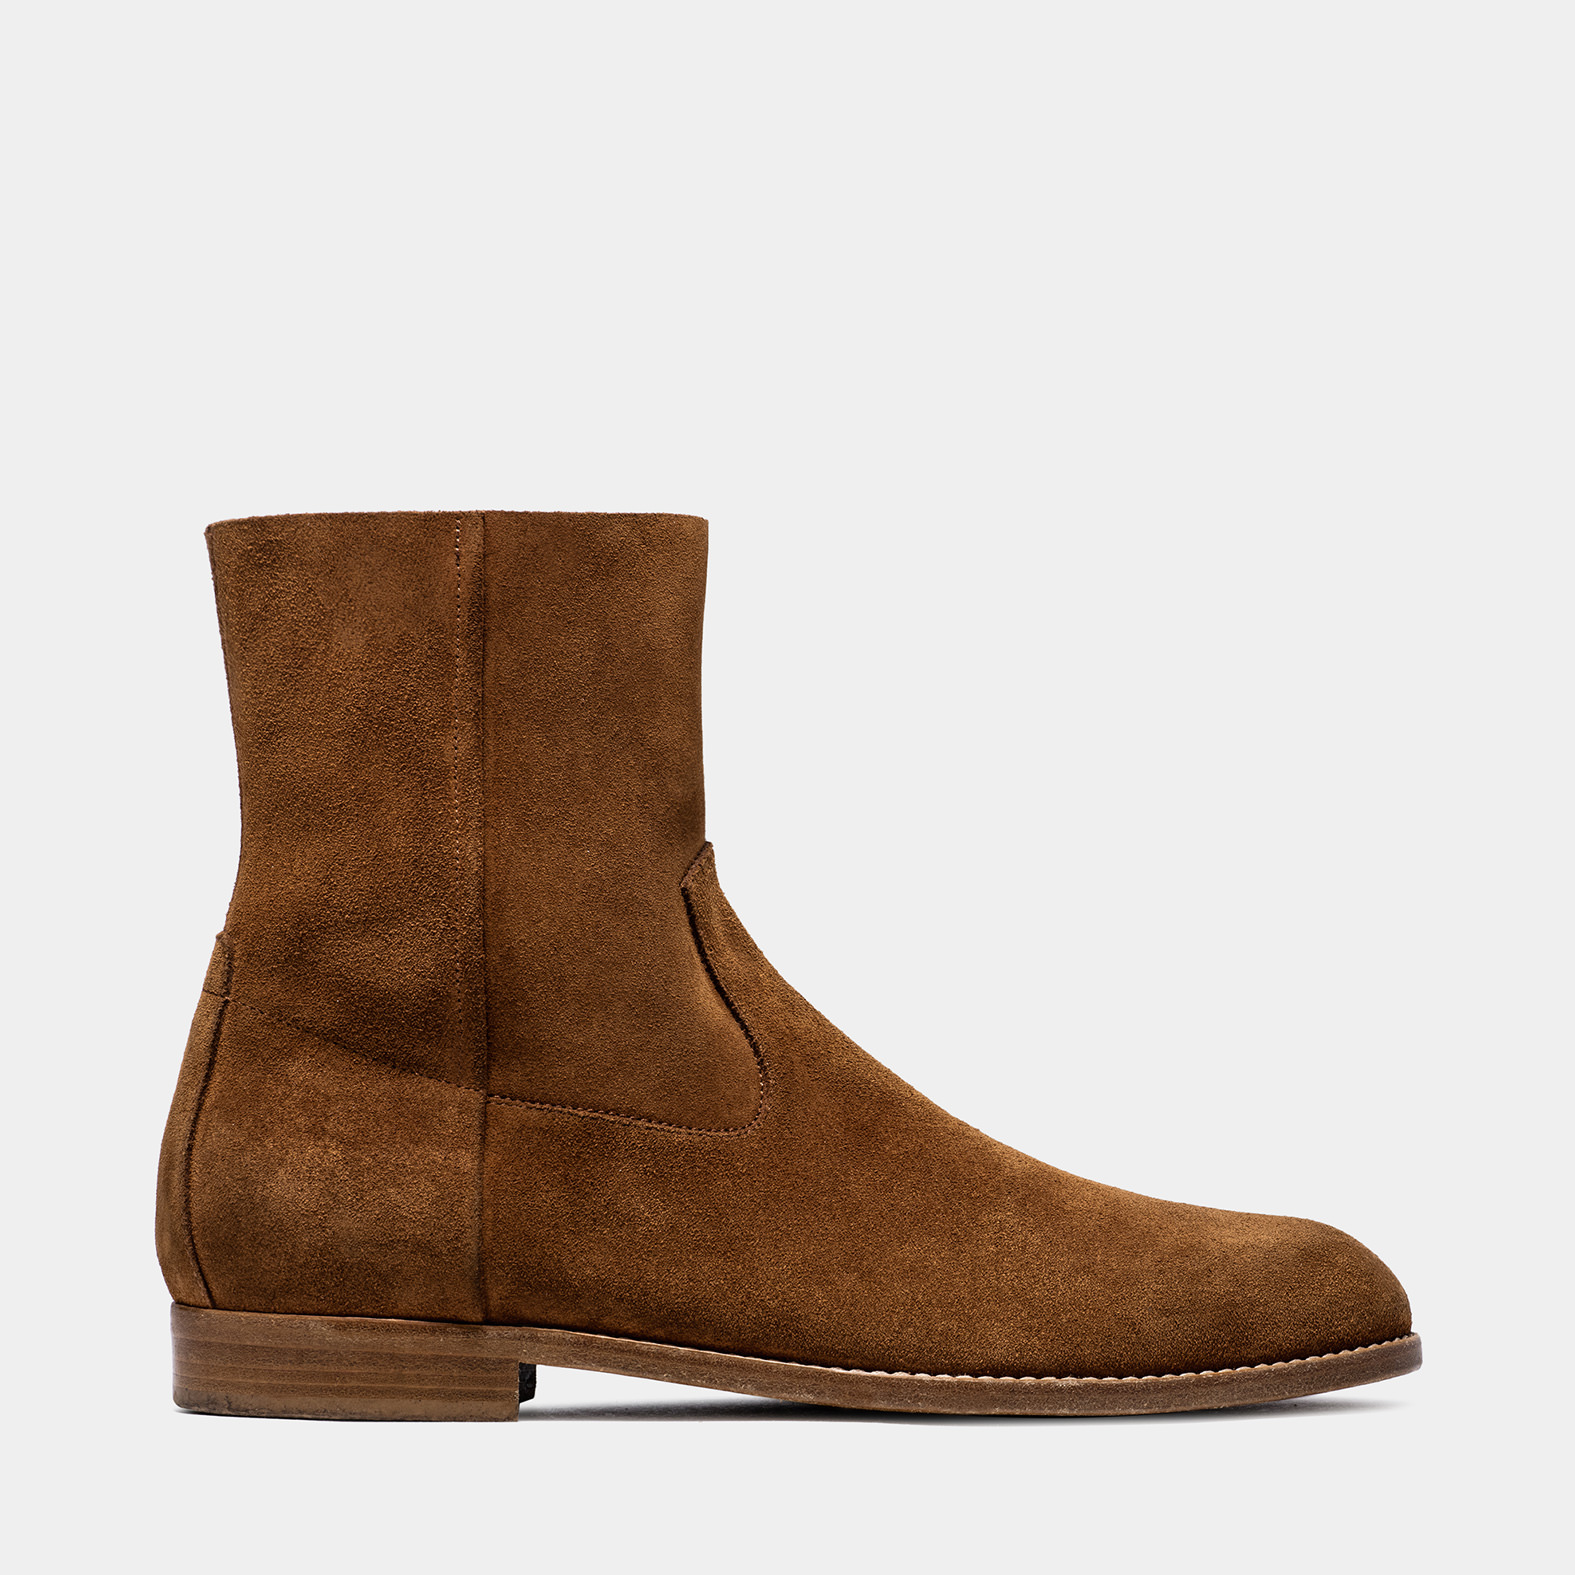 BUTTERO: TERRA SUEDE FLOYD ANKLE BOOTS